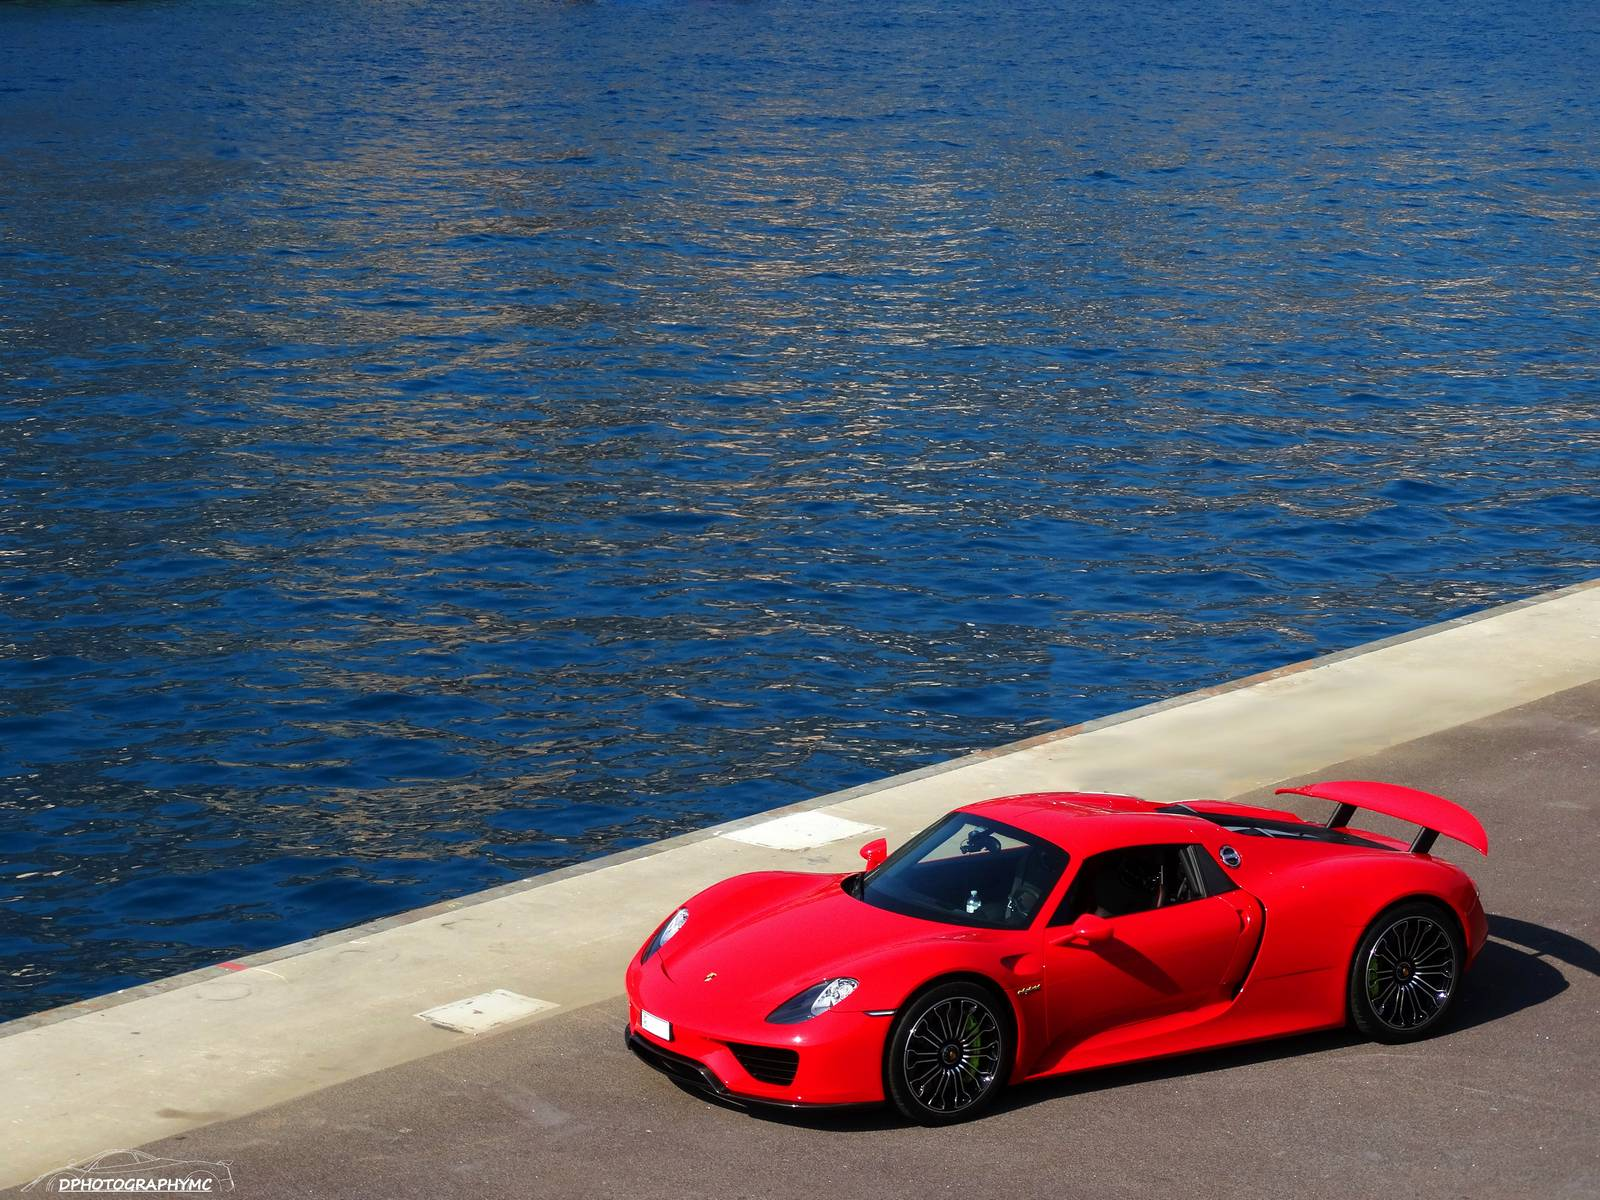 Stunning Red Porsche 918 Spyder Photoshoot In Monaco